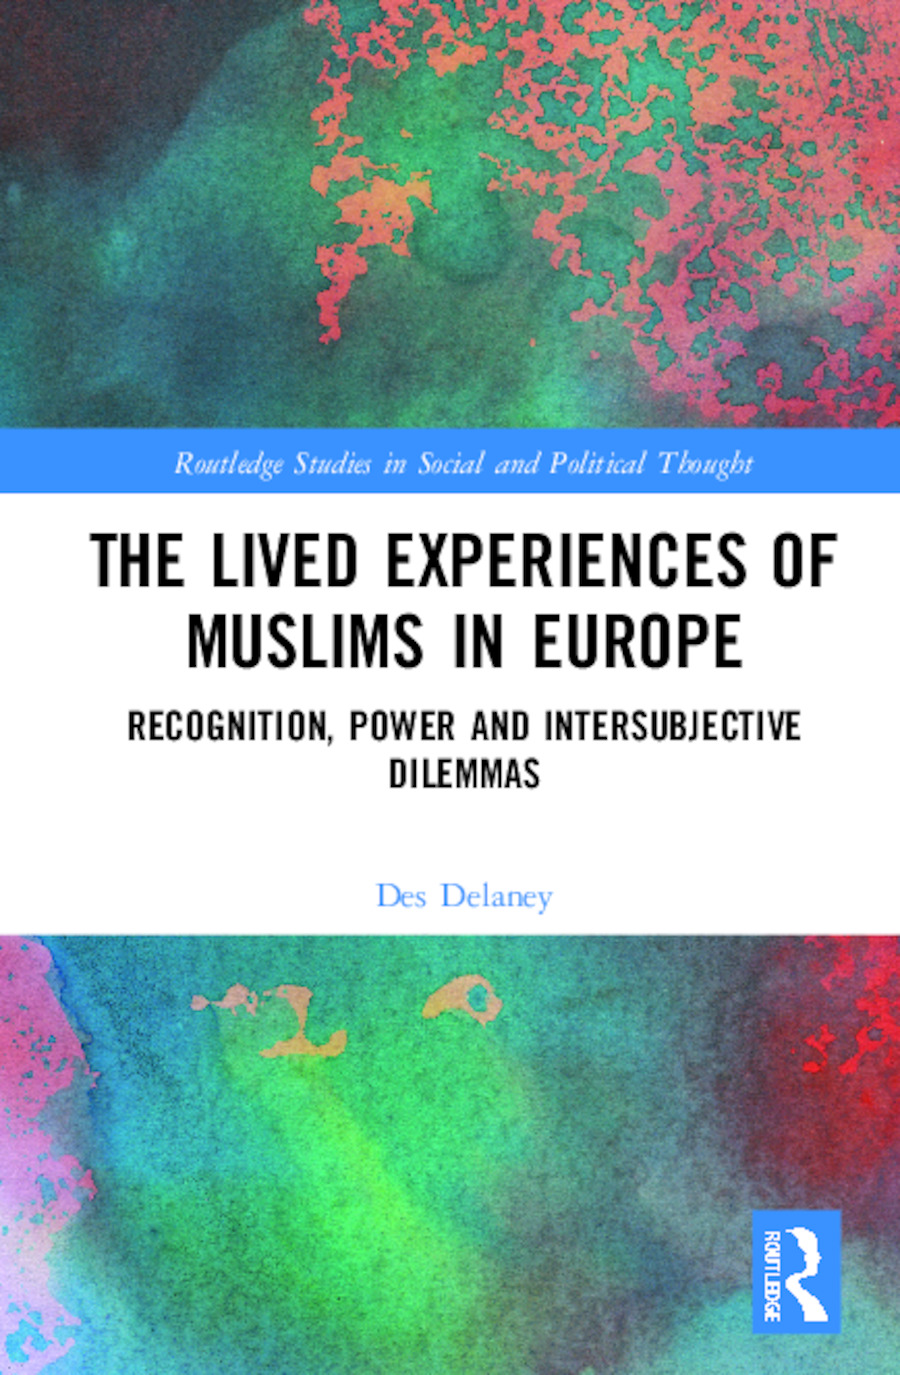 The Lived Experiences of Muslims in Europe: Recognition, Power and Intersubjective Dilemmas book cover